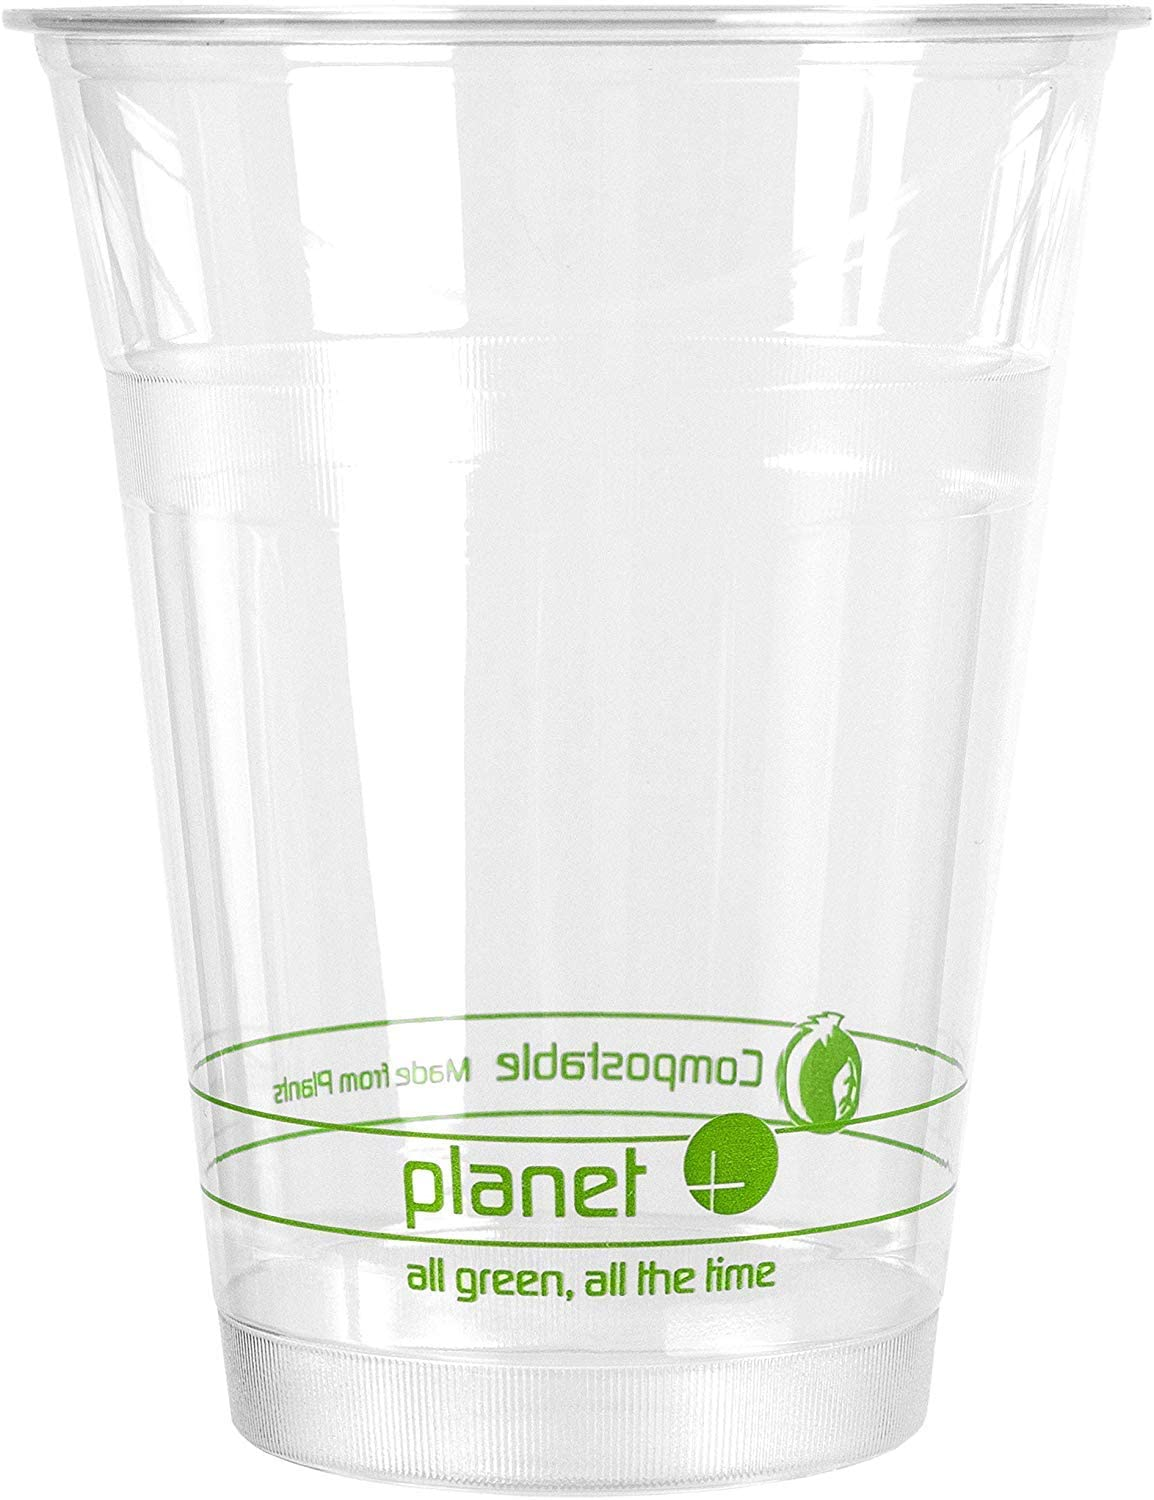 Planet + 100% Compostable PLA Clear Cold Cup, 16-Ounce, 1000-Count Case